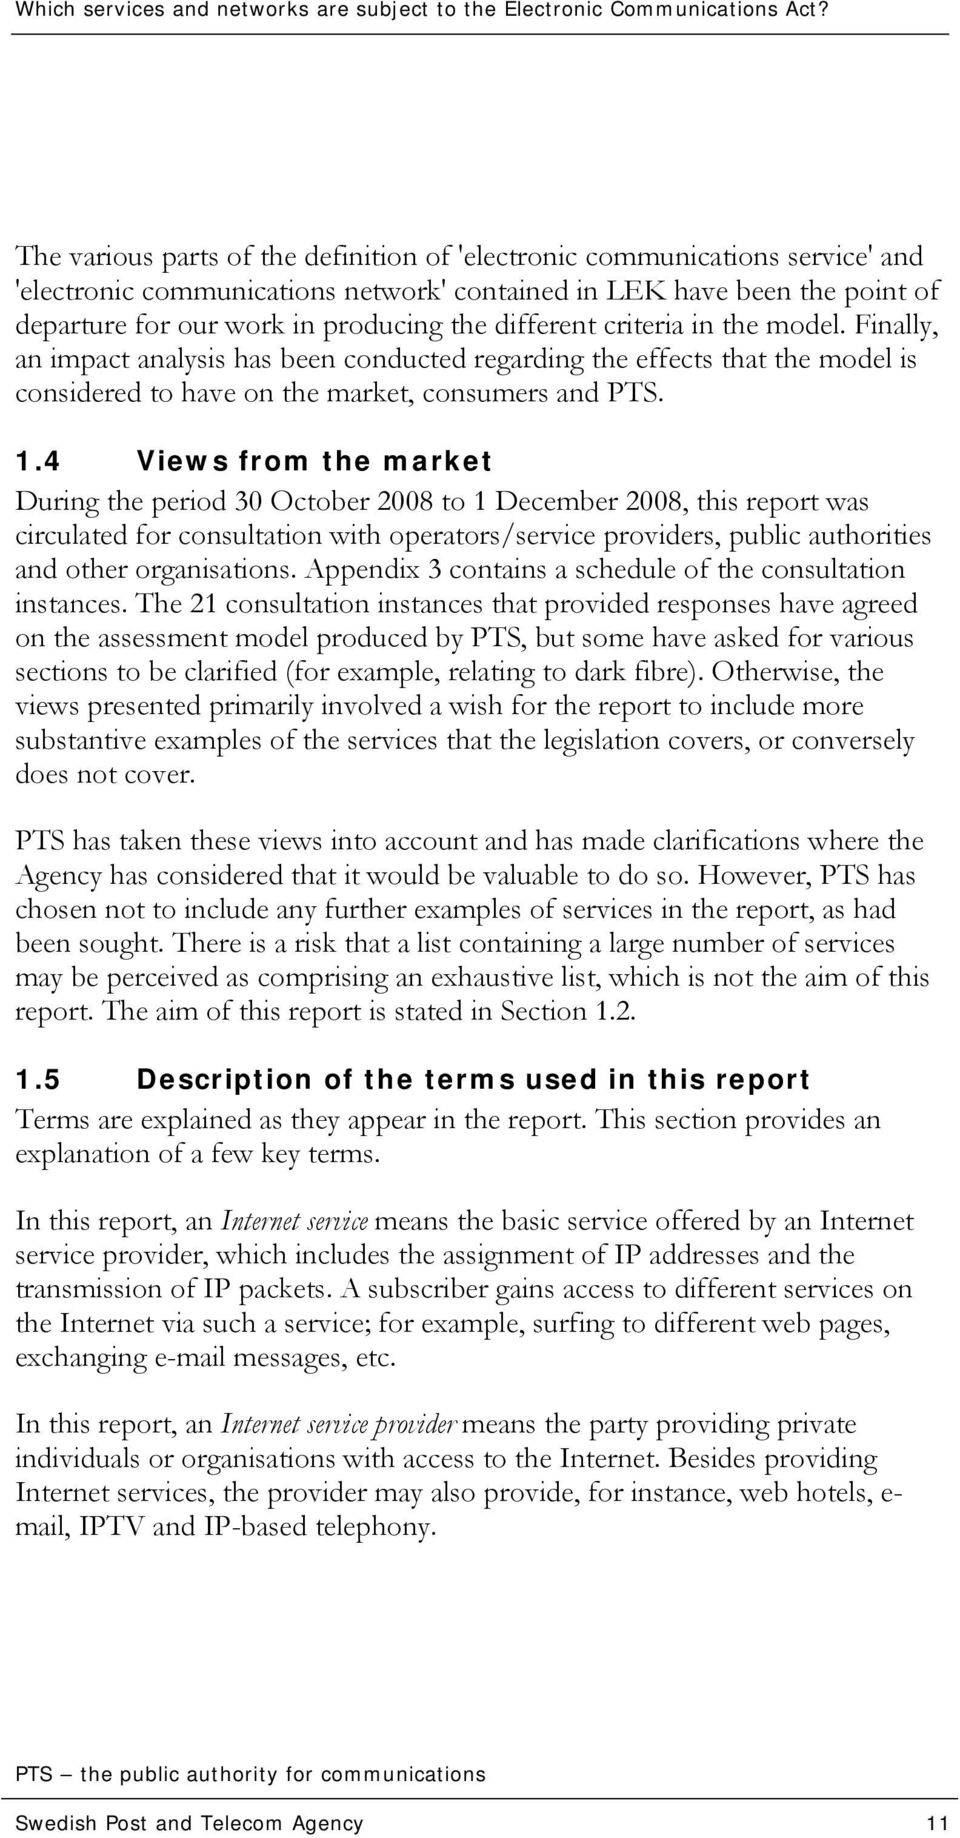 4 Views from the market During the period 30 October 2008 to 1 December 2008, this report was circulated for consultation with operators/service providers, public authorities and other organisations.